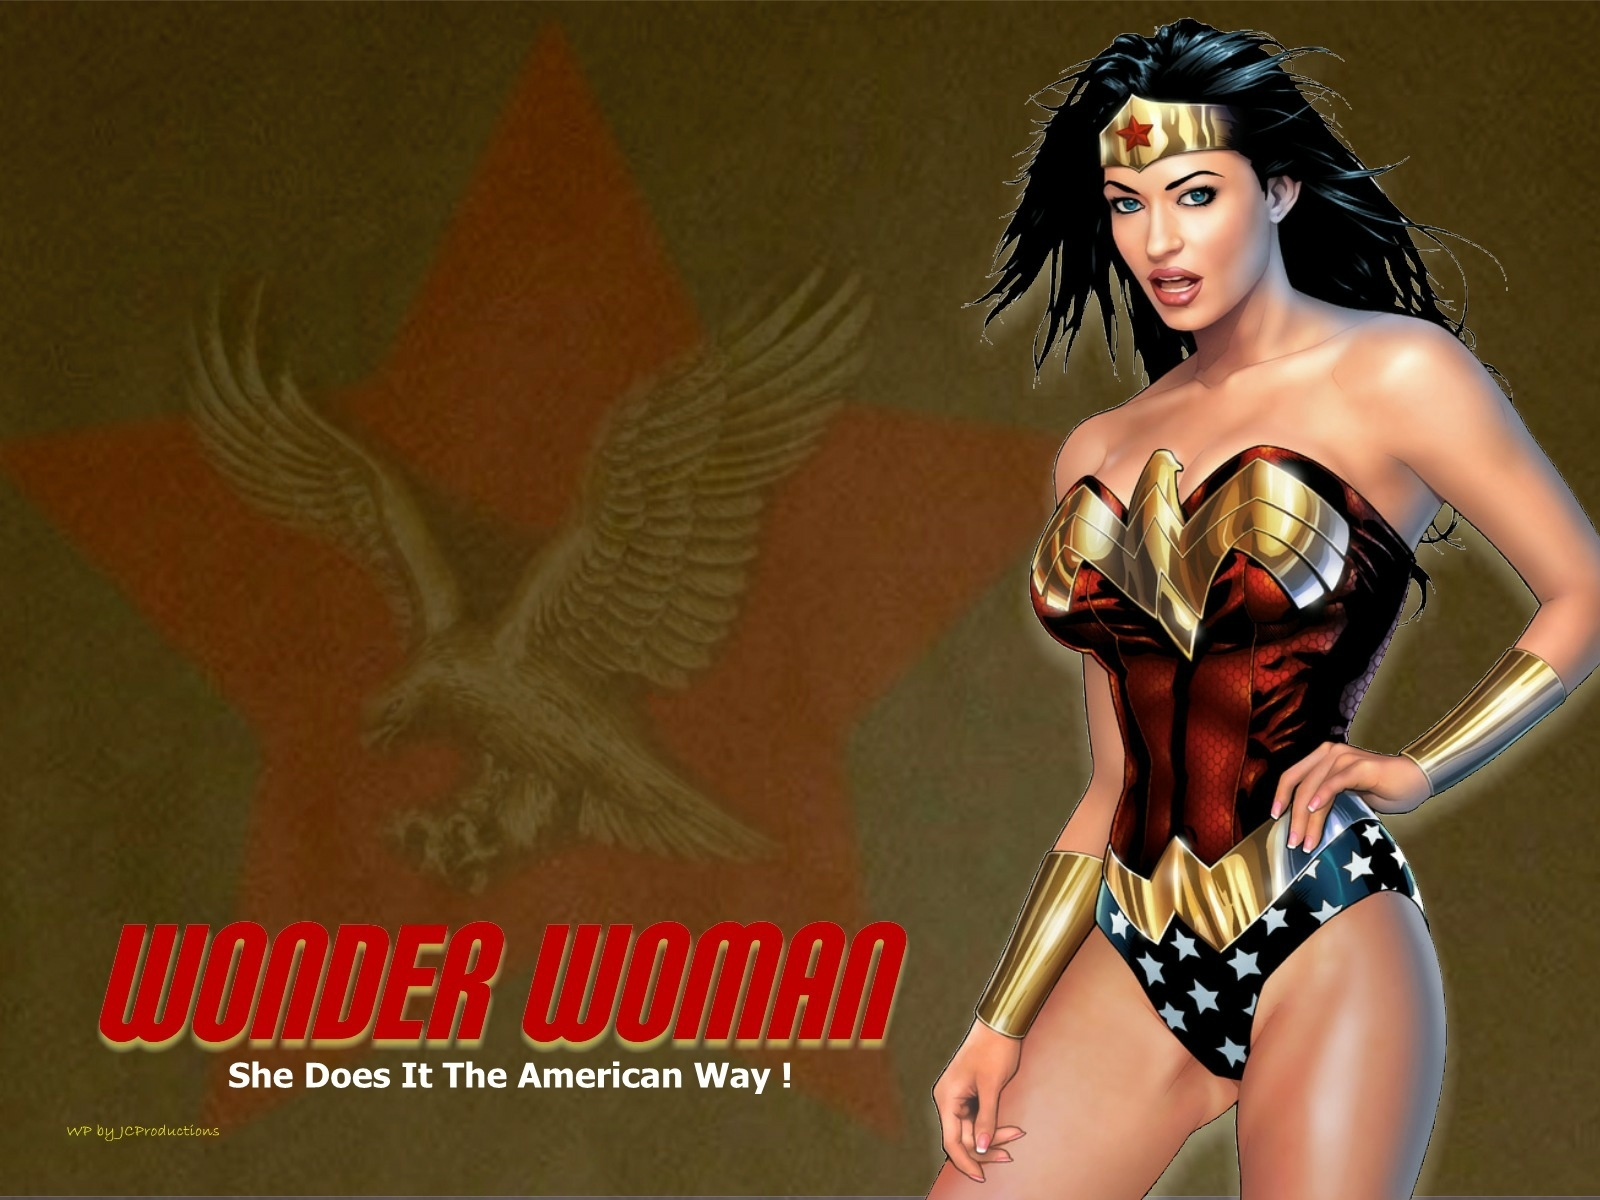 Wonder Woman - DC Comics Wallpaper (15864385) - Fanpop